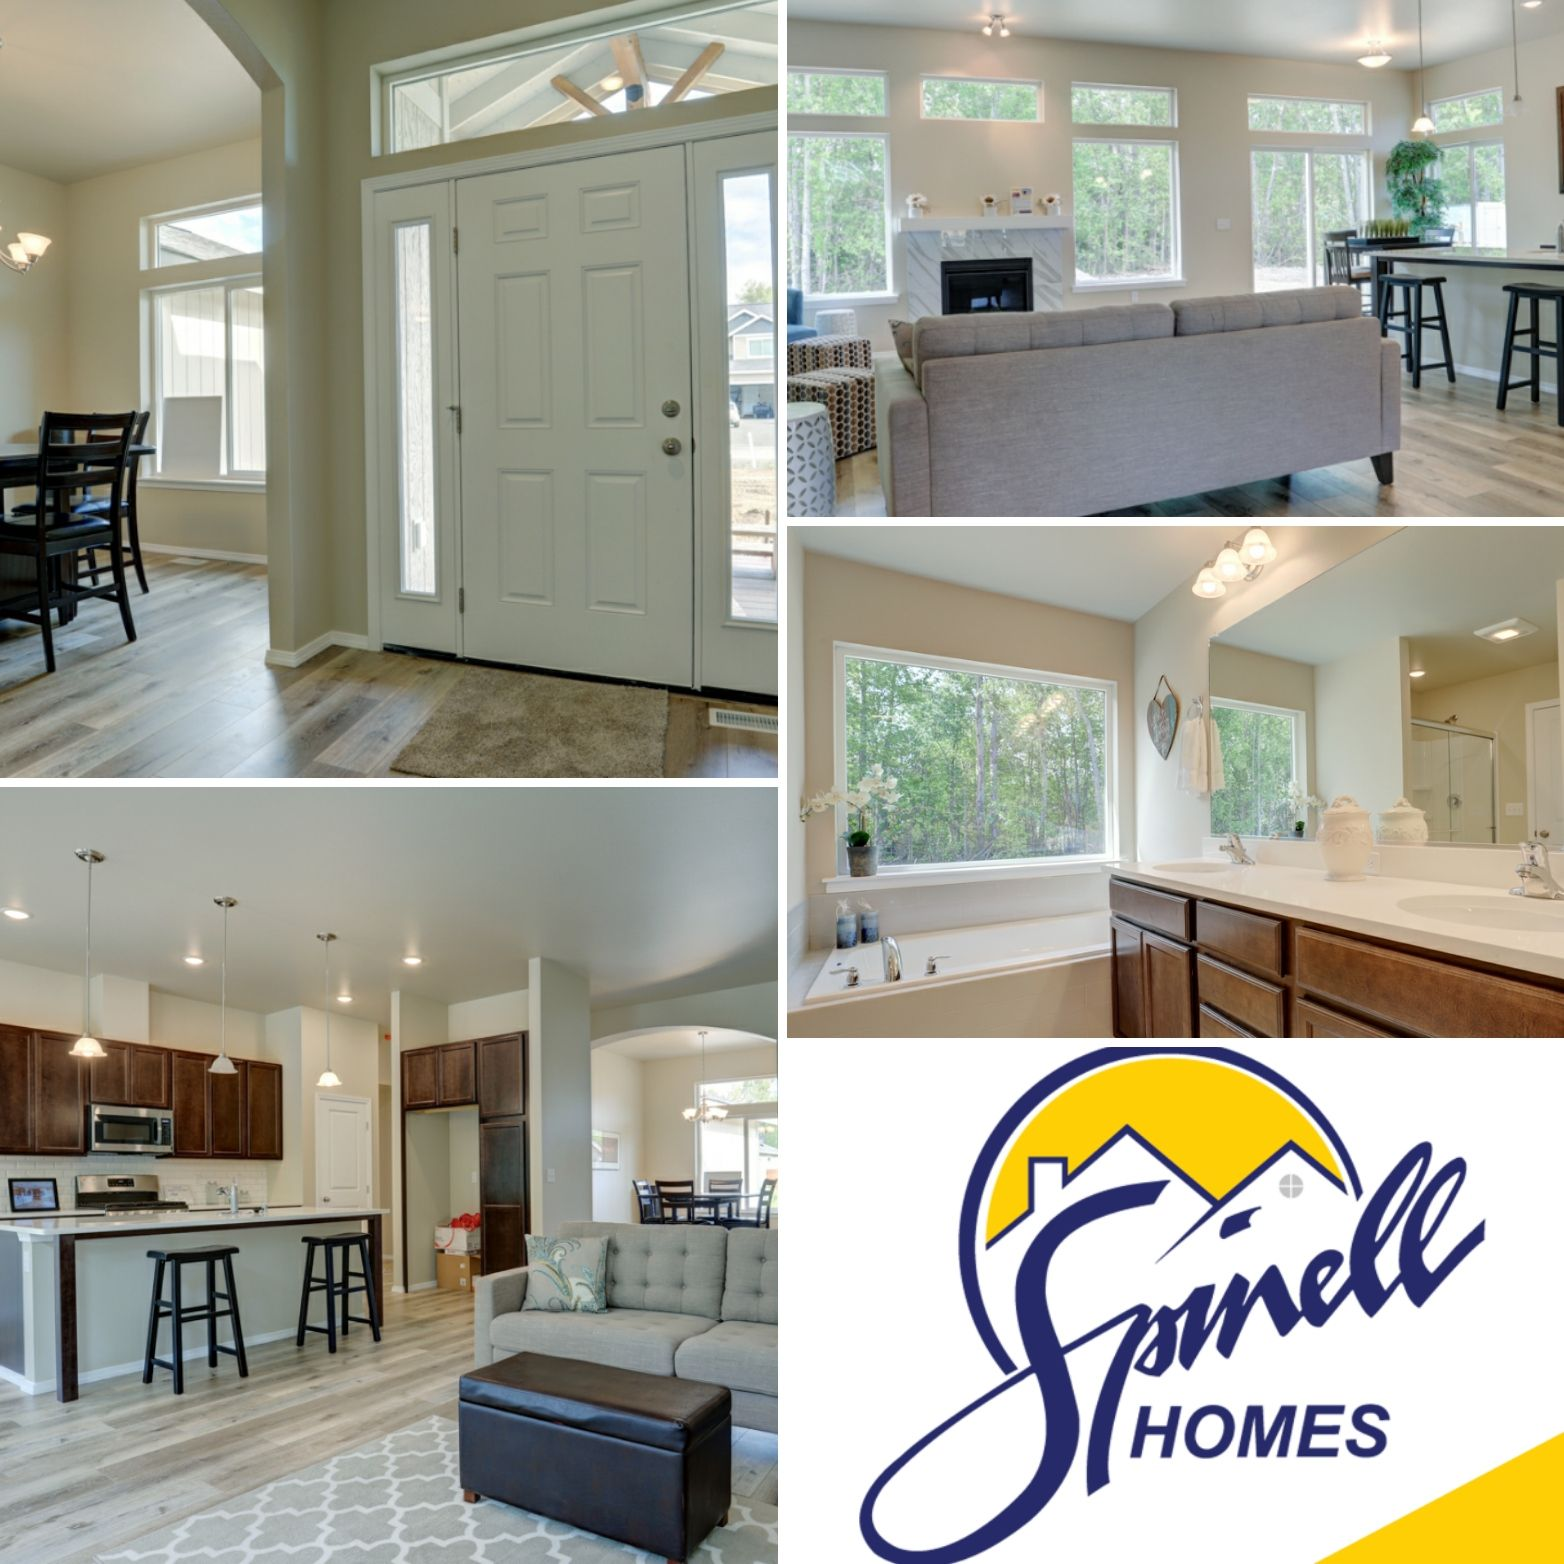 If you missed the Mat-Su Parade, here is a peak at the beautiful Sagebrush floor plan that is available right now in Palmer's Hidden Ranch neighborhood. if you are interested give @Stephanie_Gamble_Assoc_KWAG a shout!  #spoiledbyspinell #spinellhomes #builtbyourfamilyforyours #makingadifferenceinyourlife #realestate #newconstruction #NewBuild #NewHome #HouseGoals #HouseHunting #MoveInReady #MatSuValley #MatSuValleyRealEstate #MatSuRealEstate #palmerrealestate #realestatepalmer #HiddenRanch